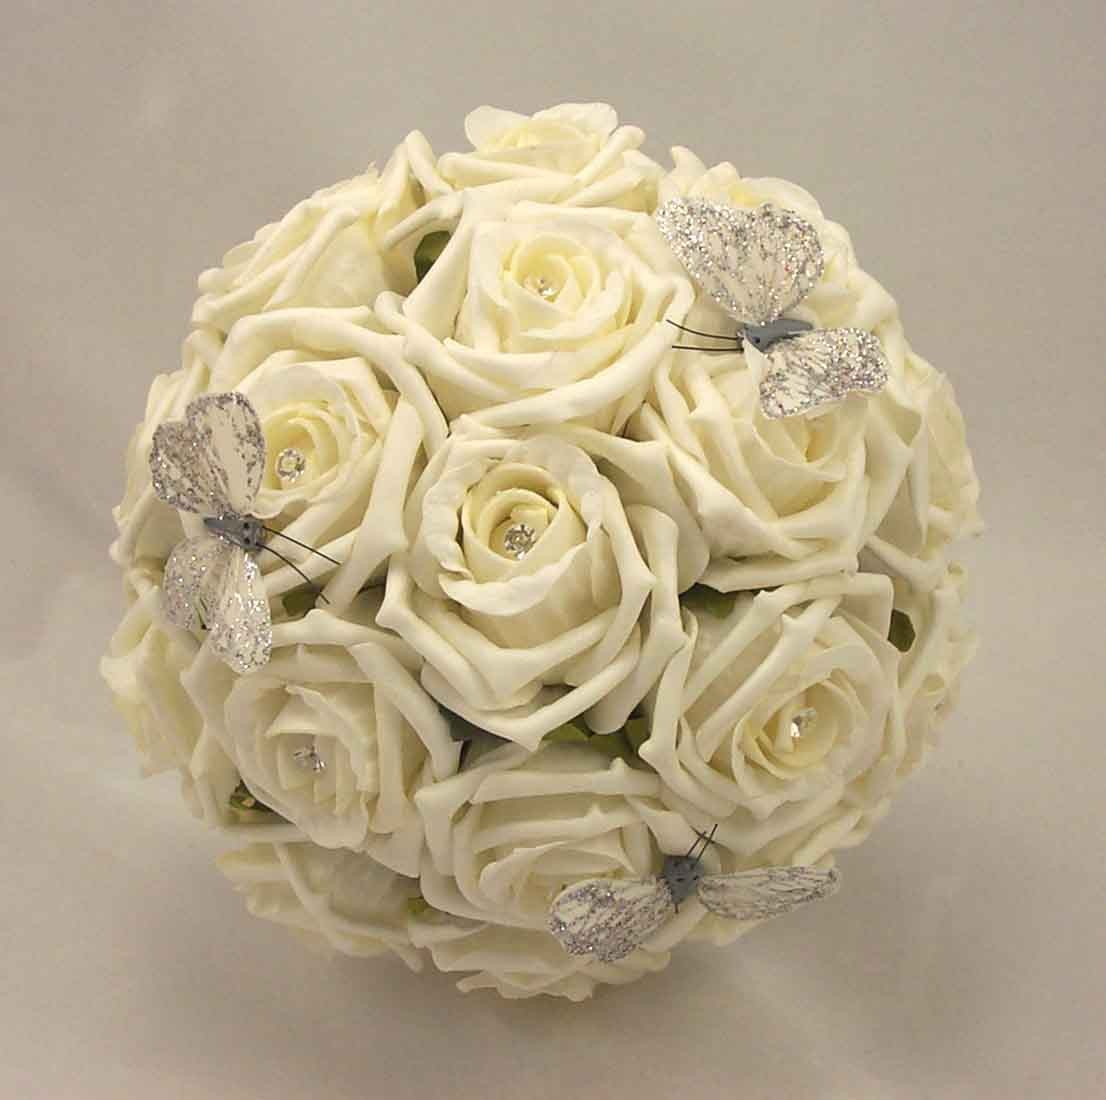 Bridesmaids bouquets ivory rose diamante butterfly bouquet silk ivory rose diamante butterfly bouquet izmirmasajfo